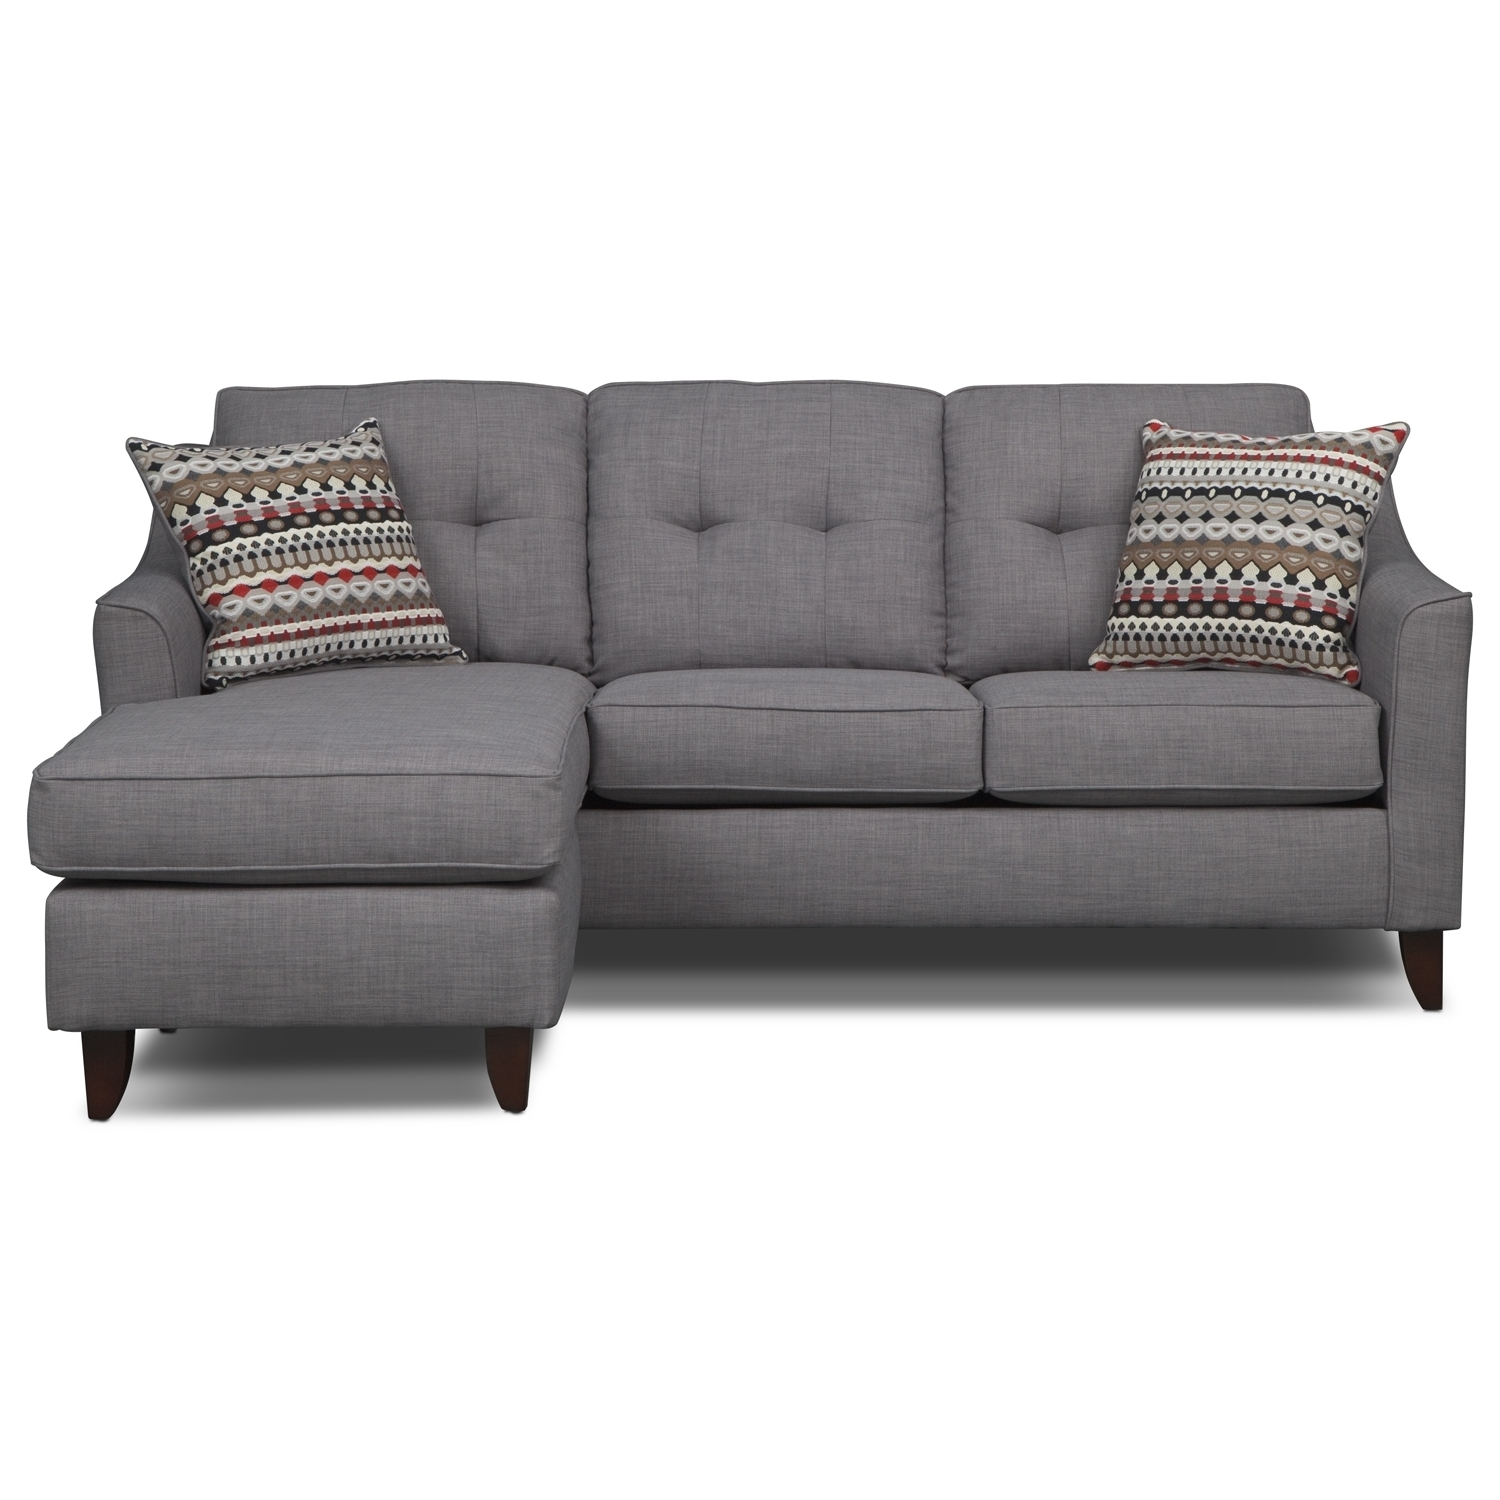 Famous Sofa: Unique Cheap Chaise Sofa Cheap Chaise Lounge, Couches Ikea With Regard To Gray Couches With Chaise (View 7 of 15)